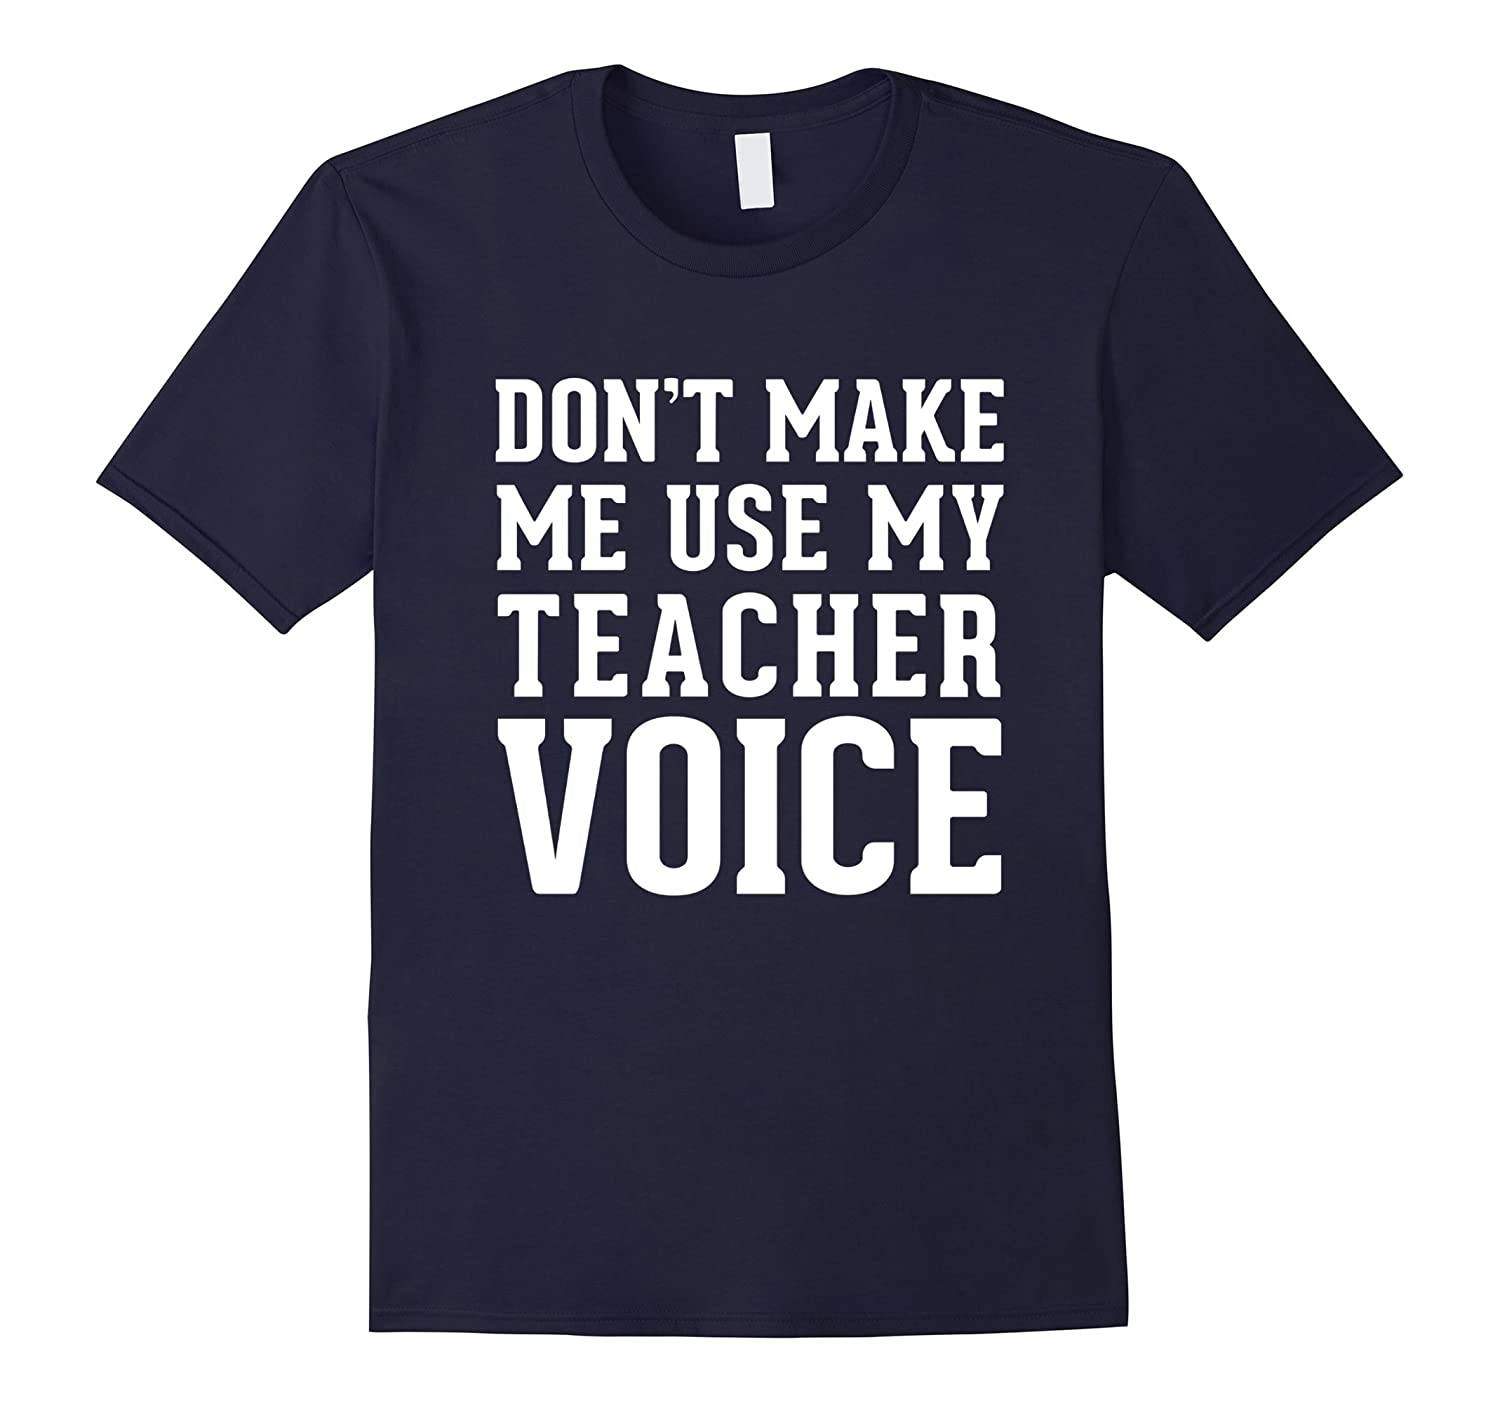 Best Seller: Don't make me use my teacher voice Funny Tee-BN